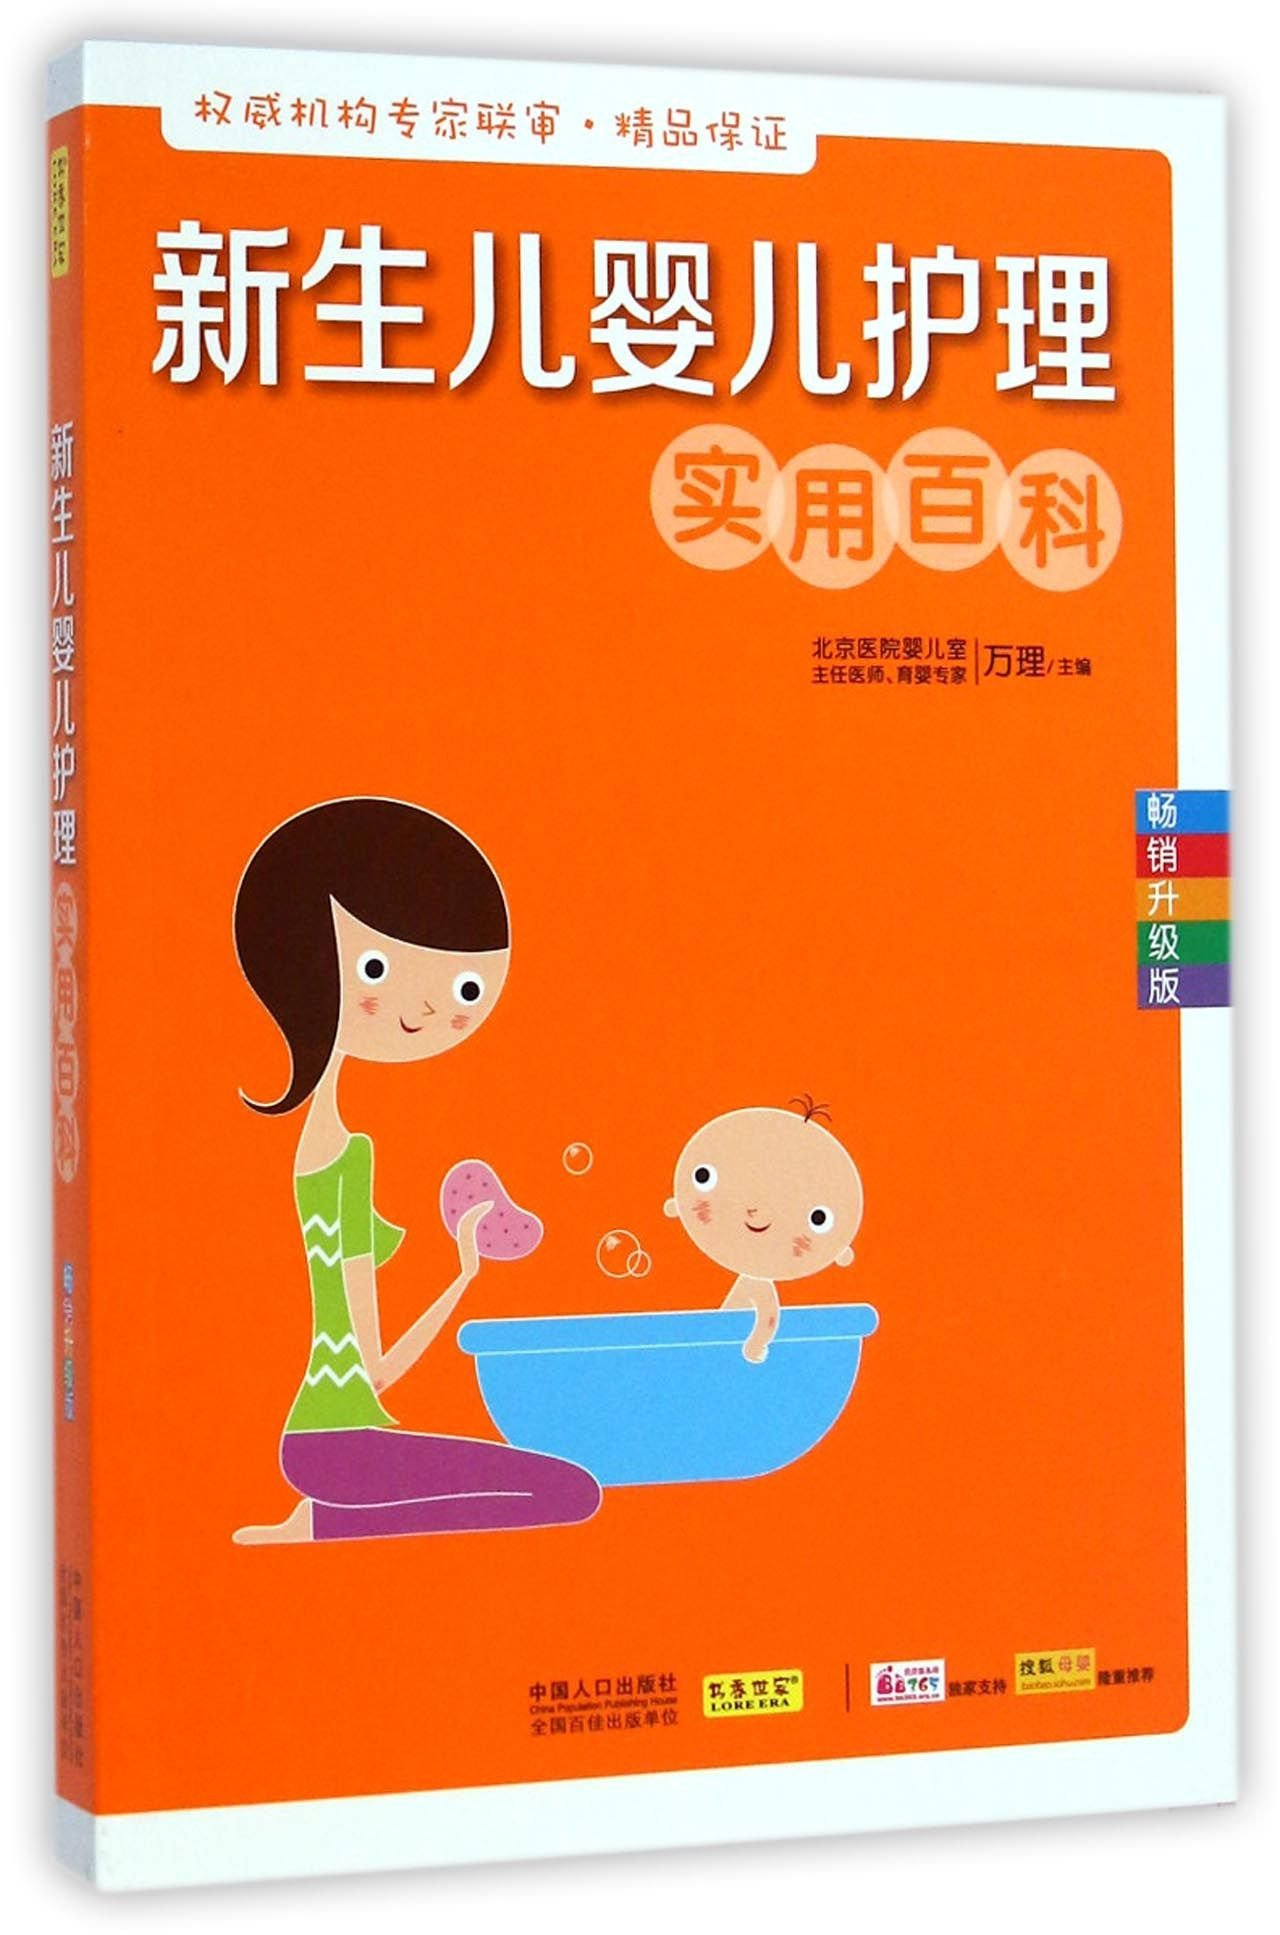 Practical Encyclopedia newborn baby care(Chinese Edition) ebook